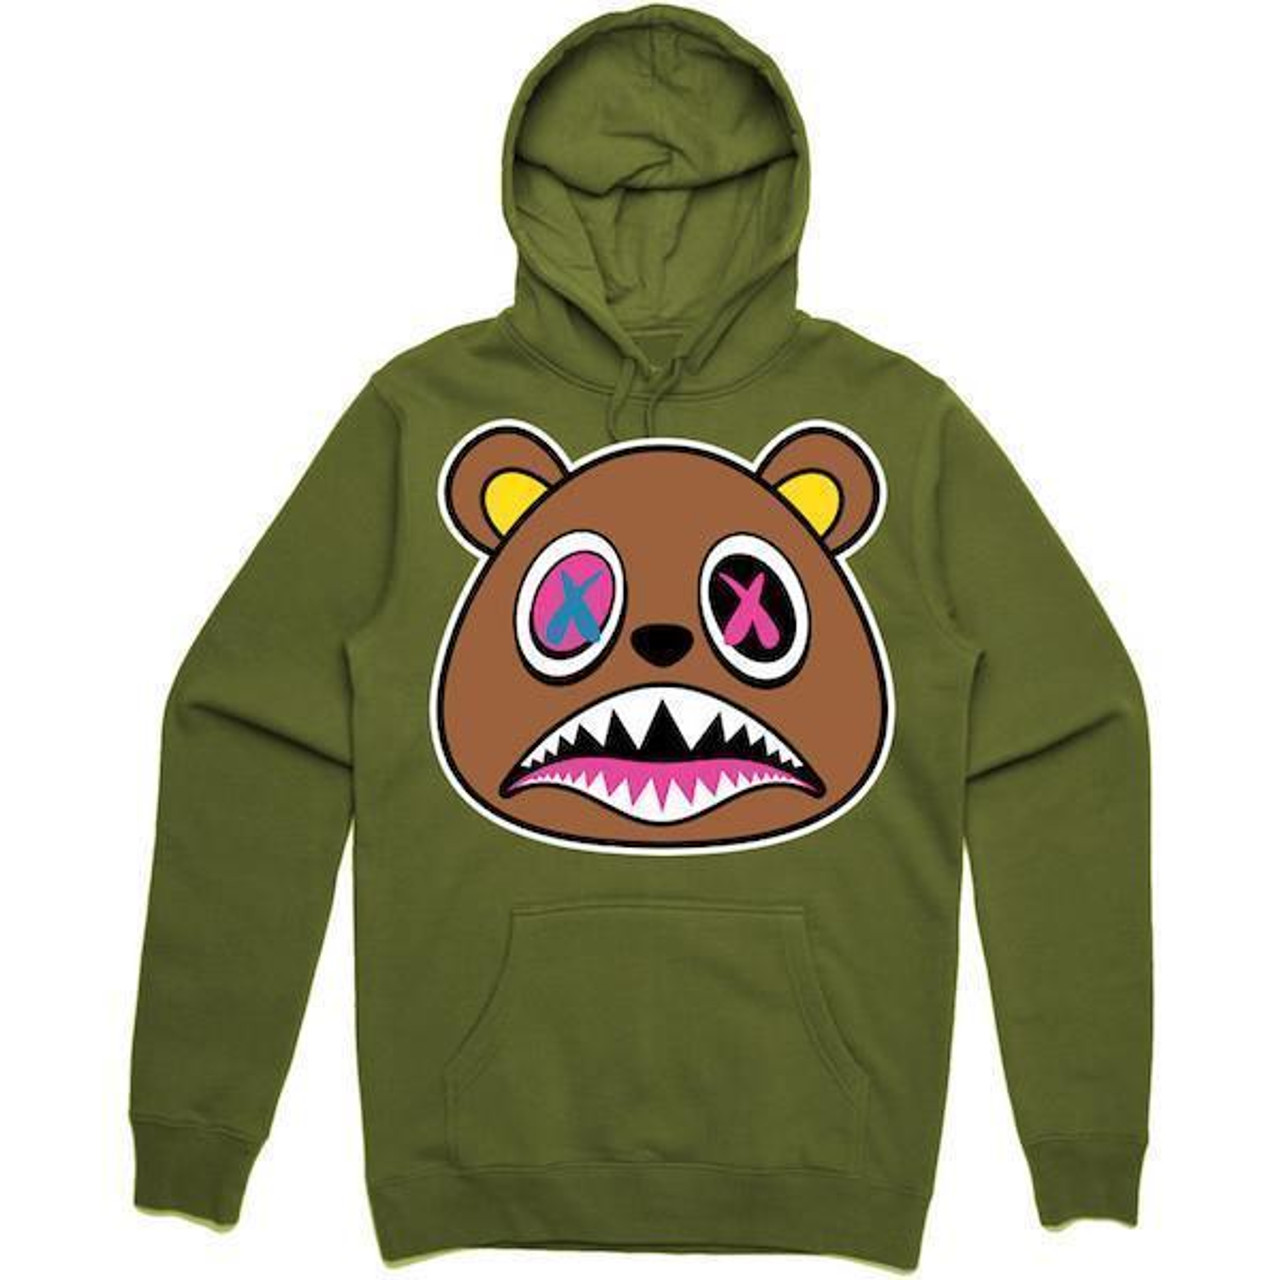 24389c6e3f42 BAWS Brown Bear Green Hoodie